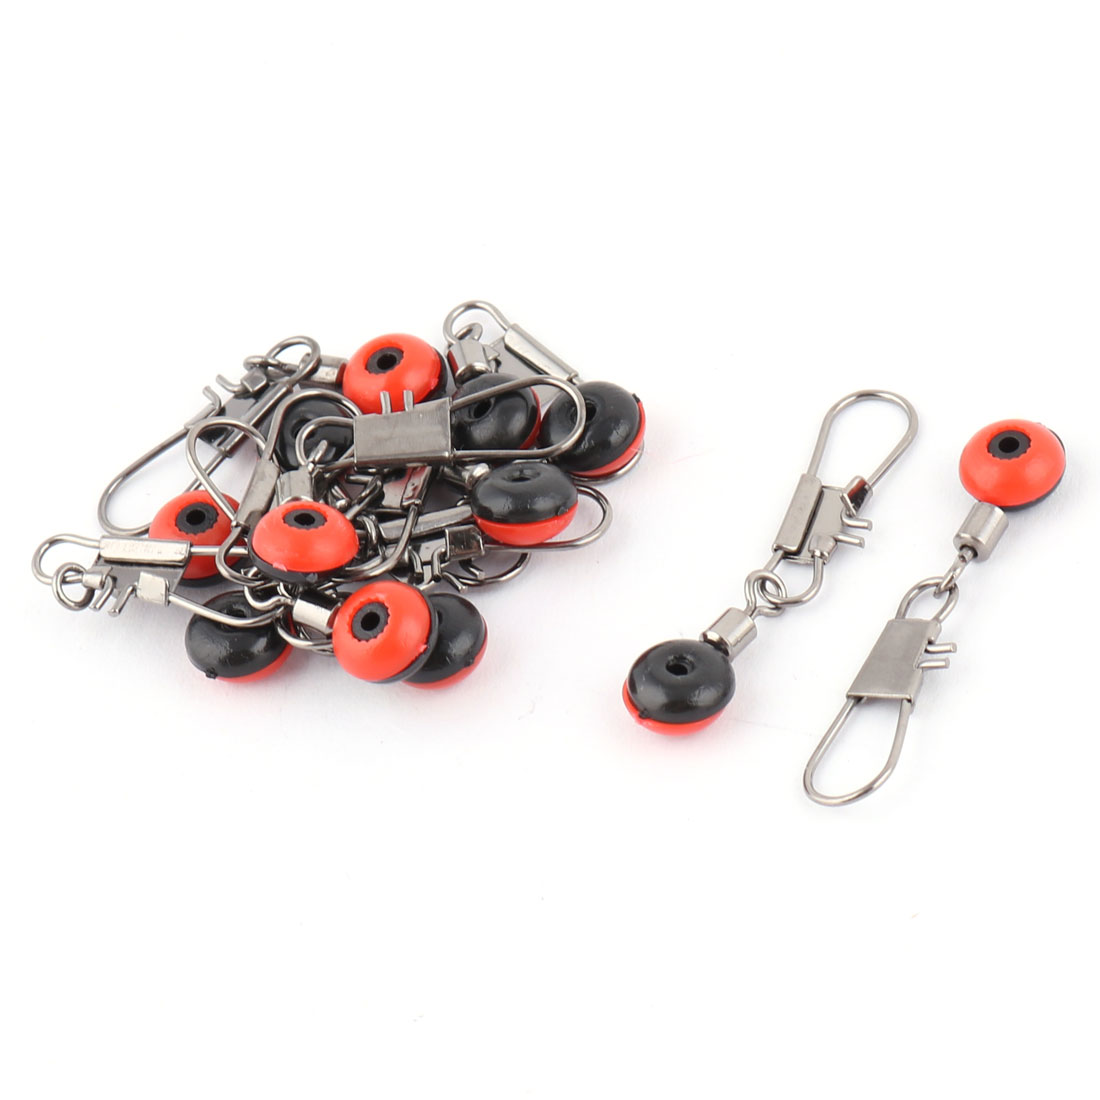 Orange Red Fishing Line to Hook Shank Clip Swivels Connector 10 Pcs